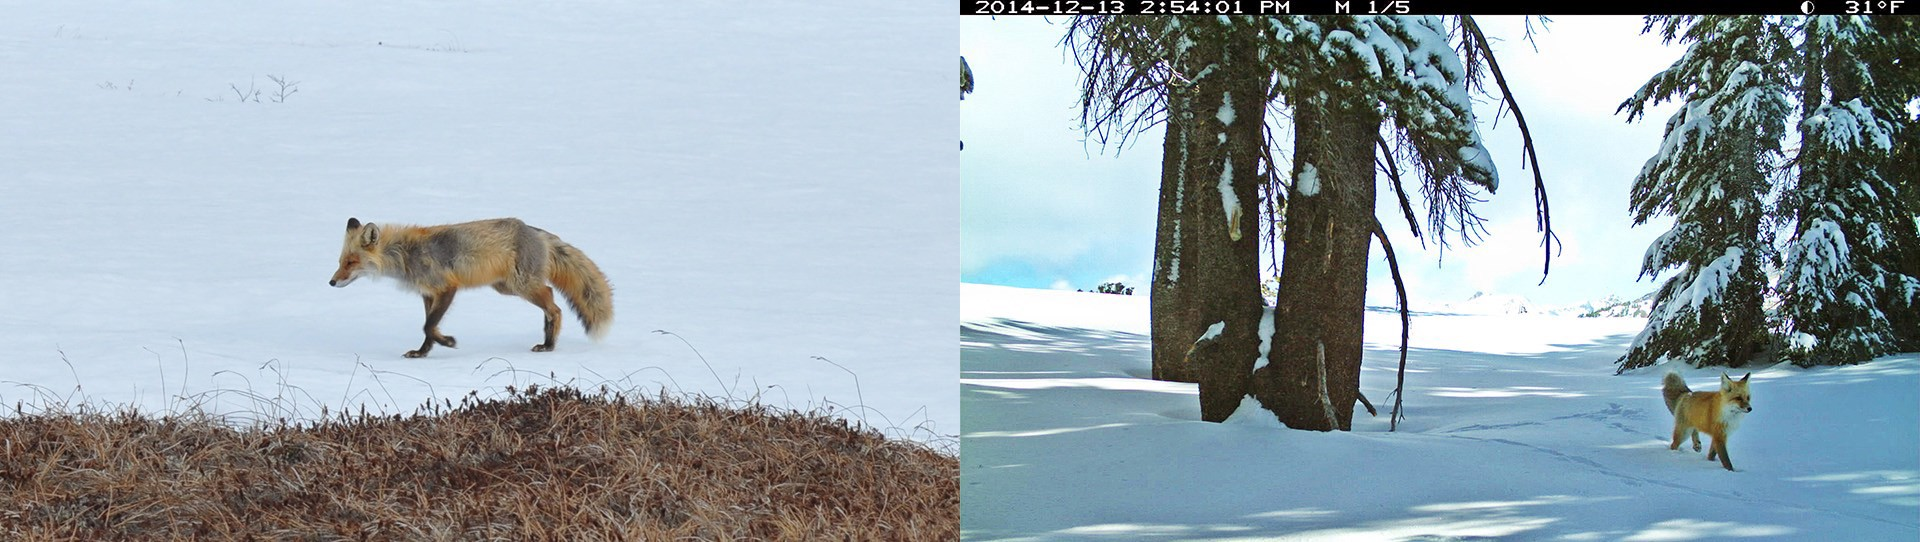 A side-by-side comparison of two orange and white foxes, walking through snow.